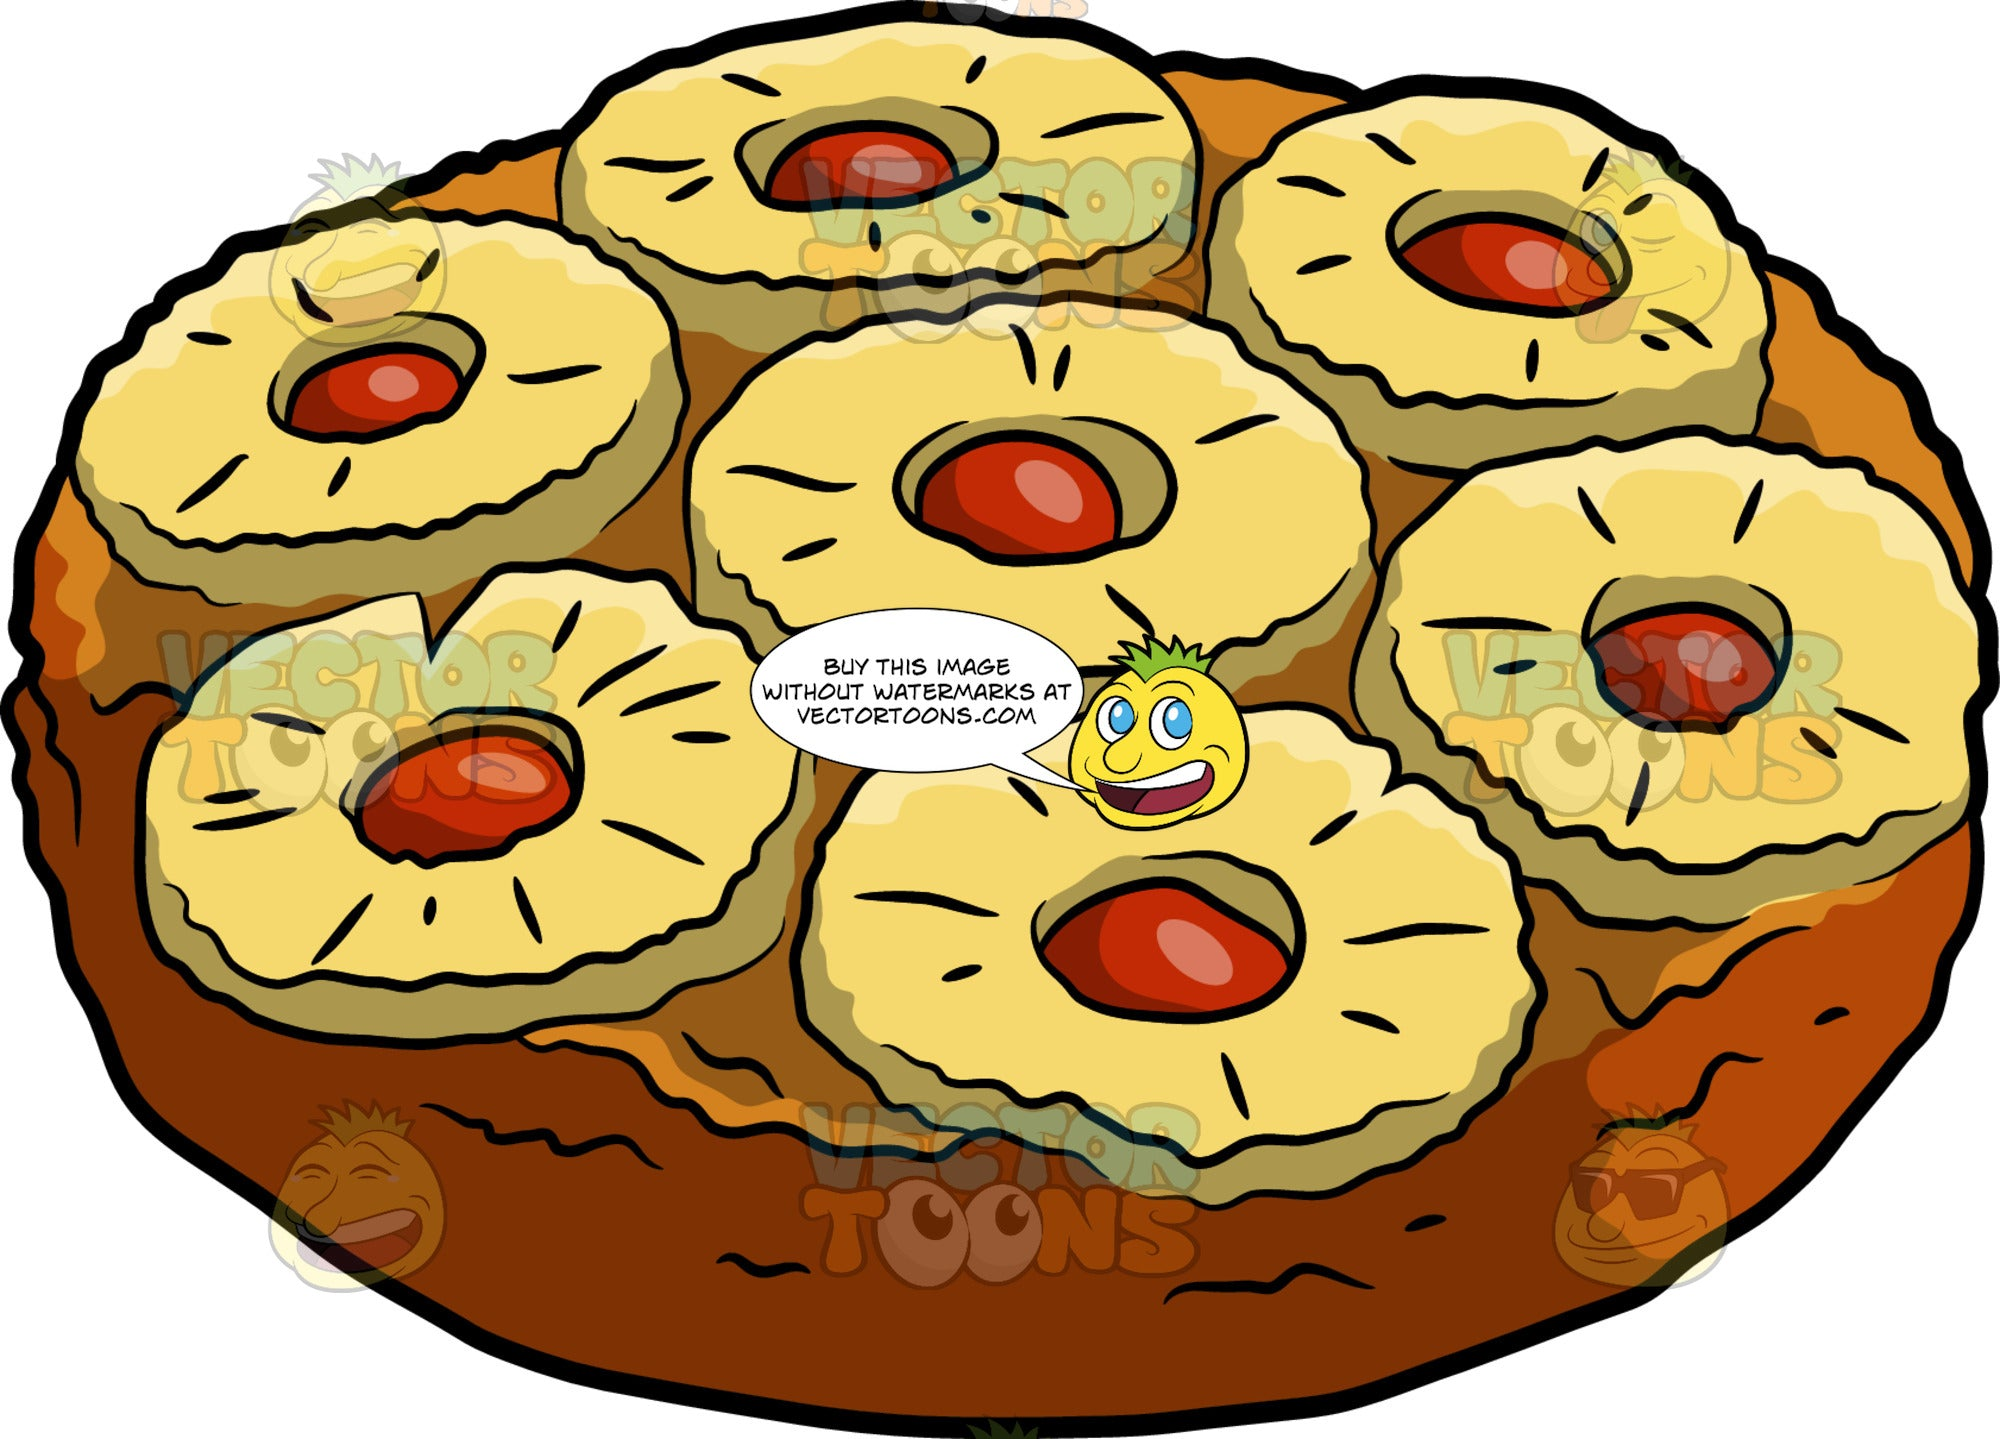 A Pineapple Upside Down Cake – Clipart Cartoons By VectorToons